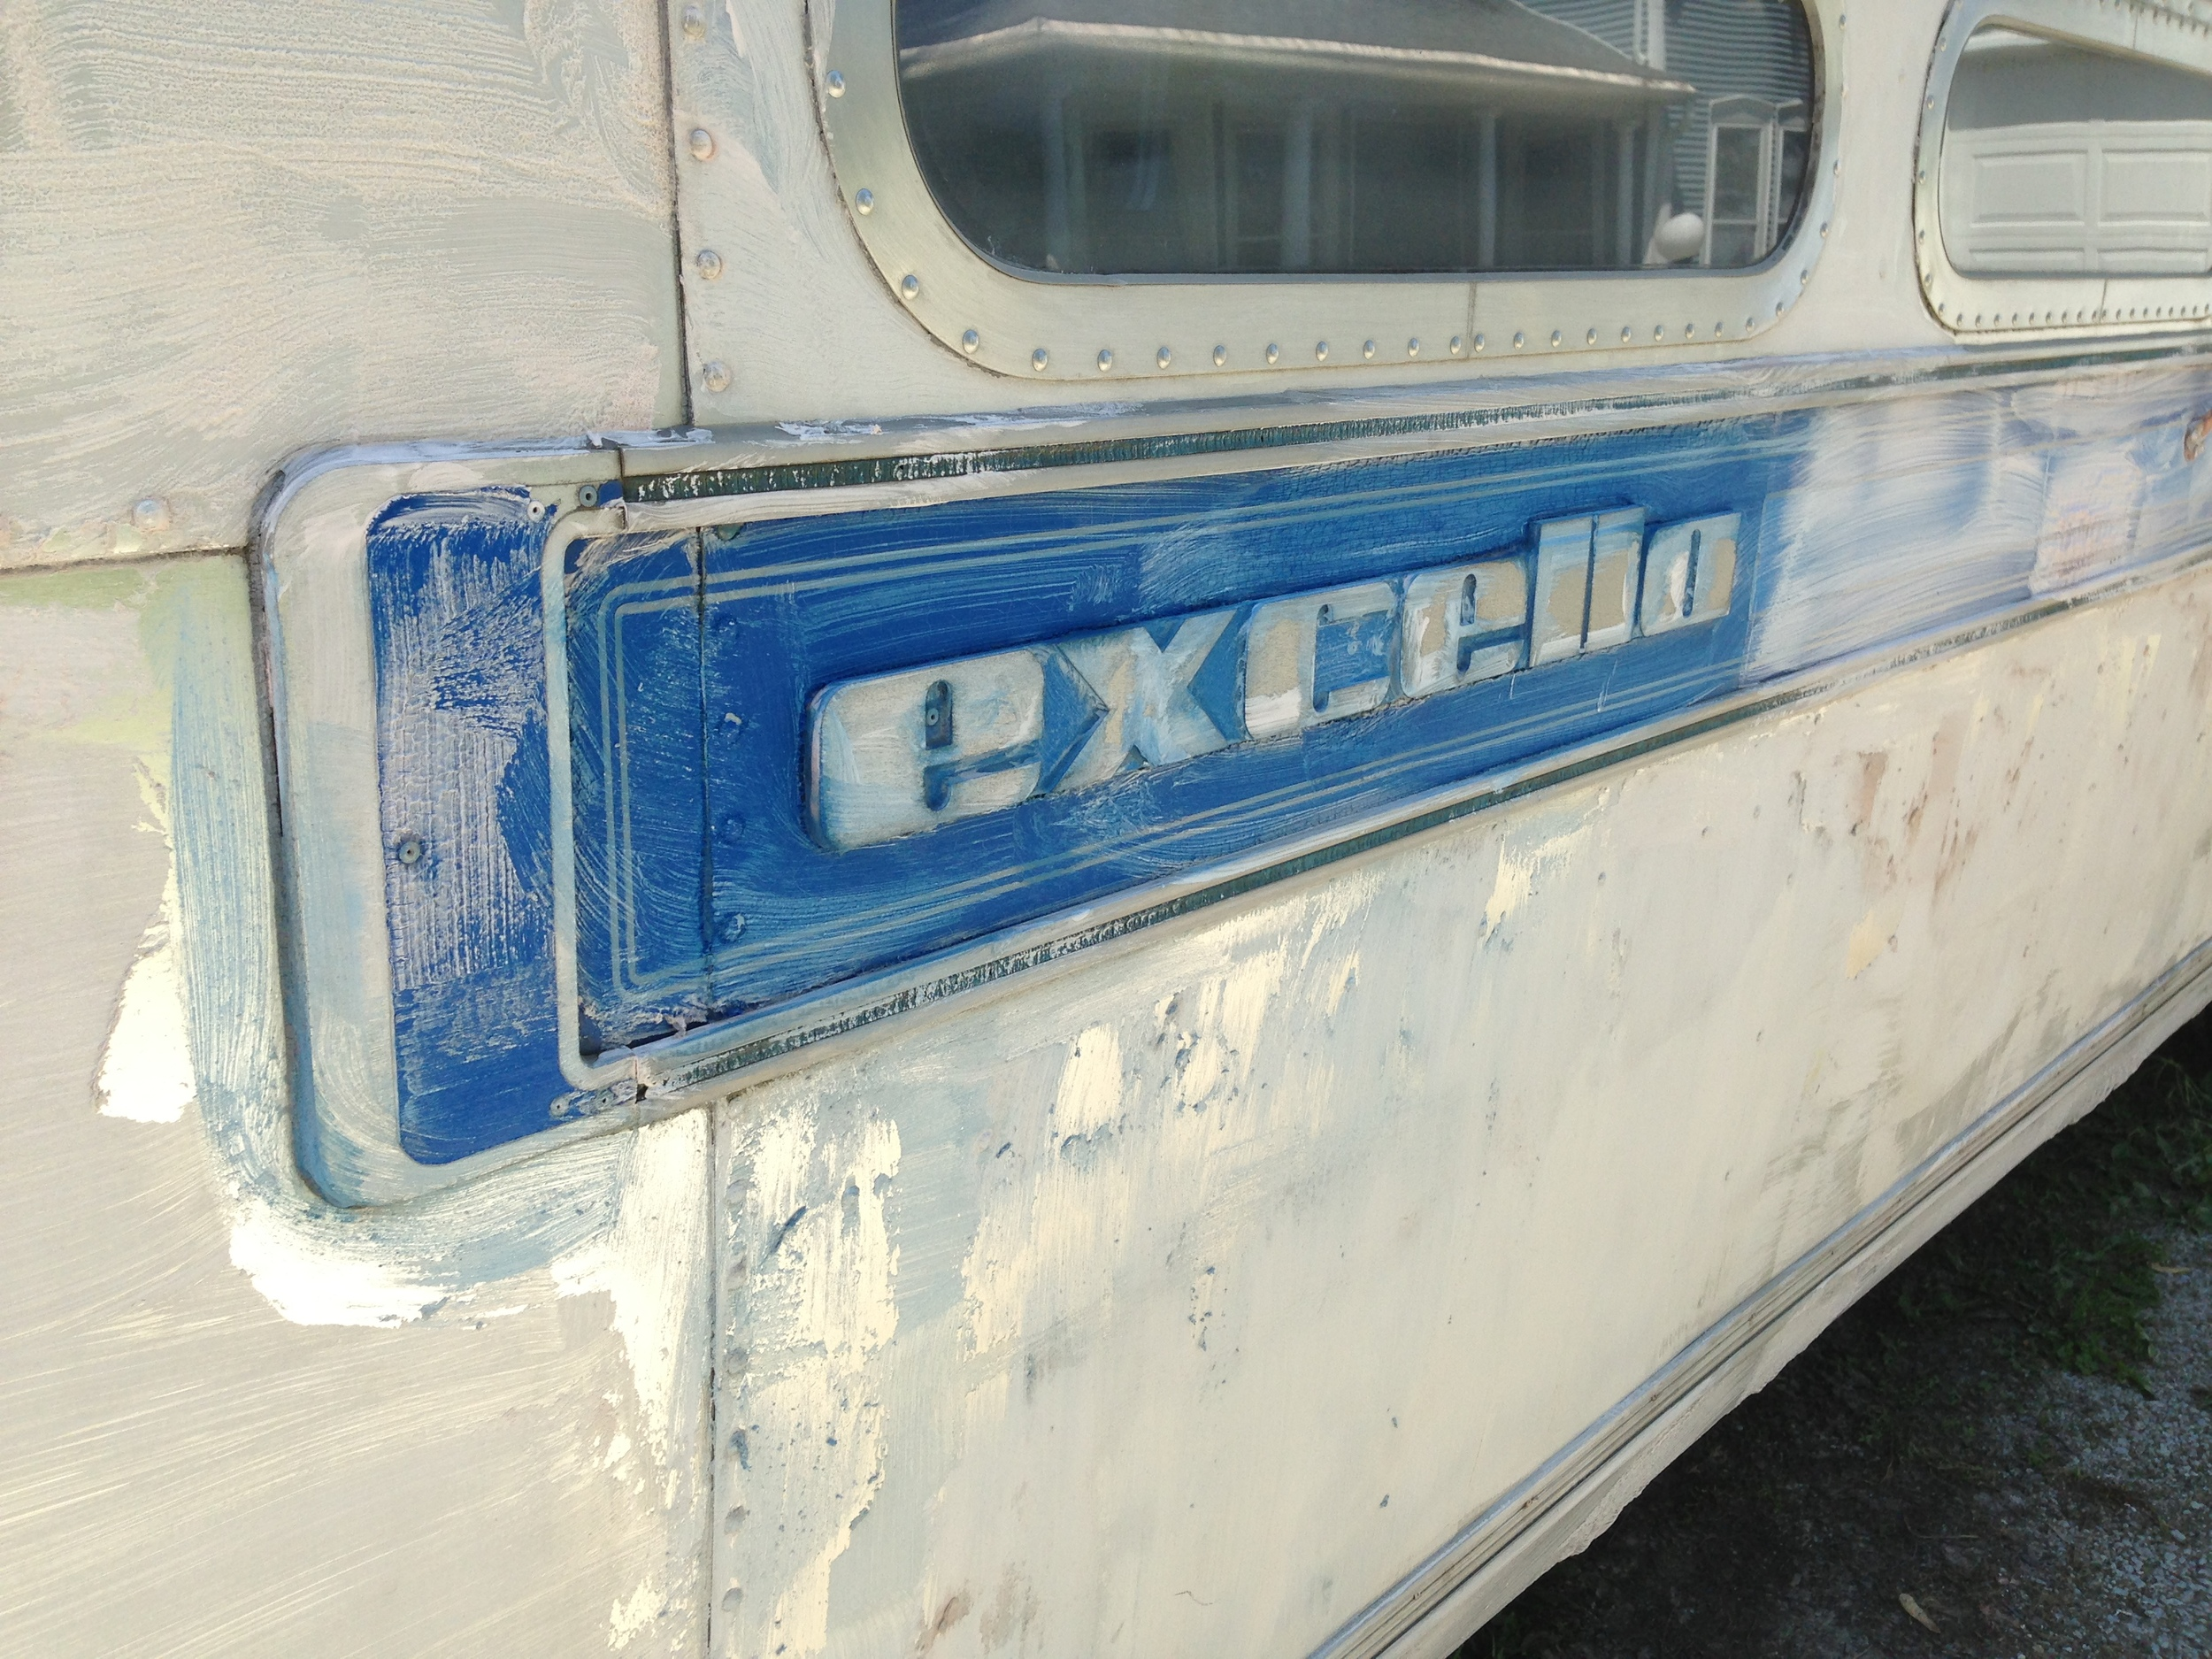 Blue Excella Nameplate and Decals